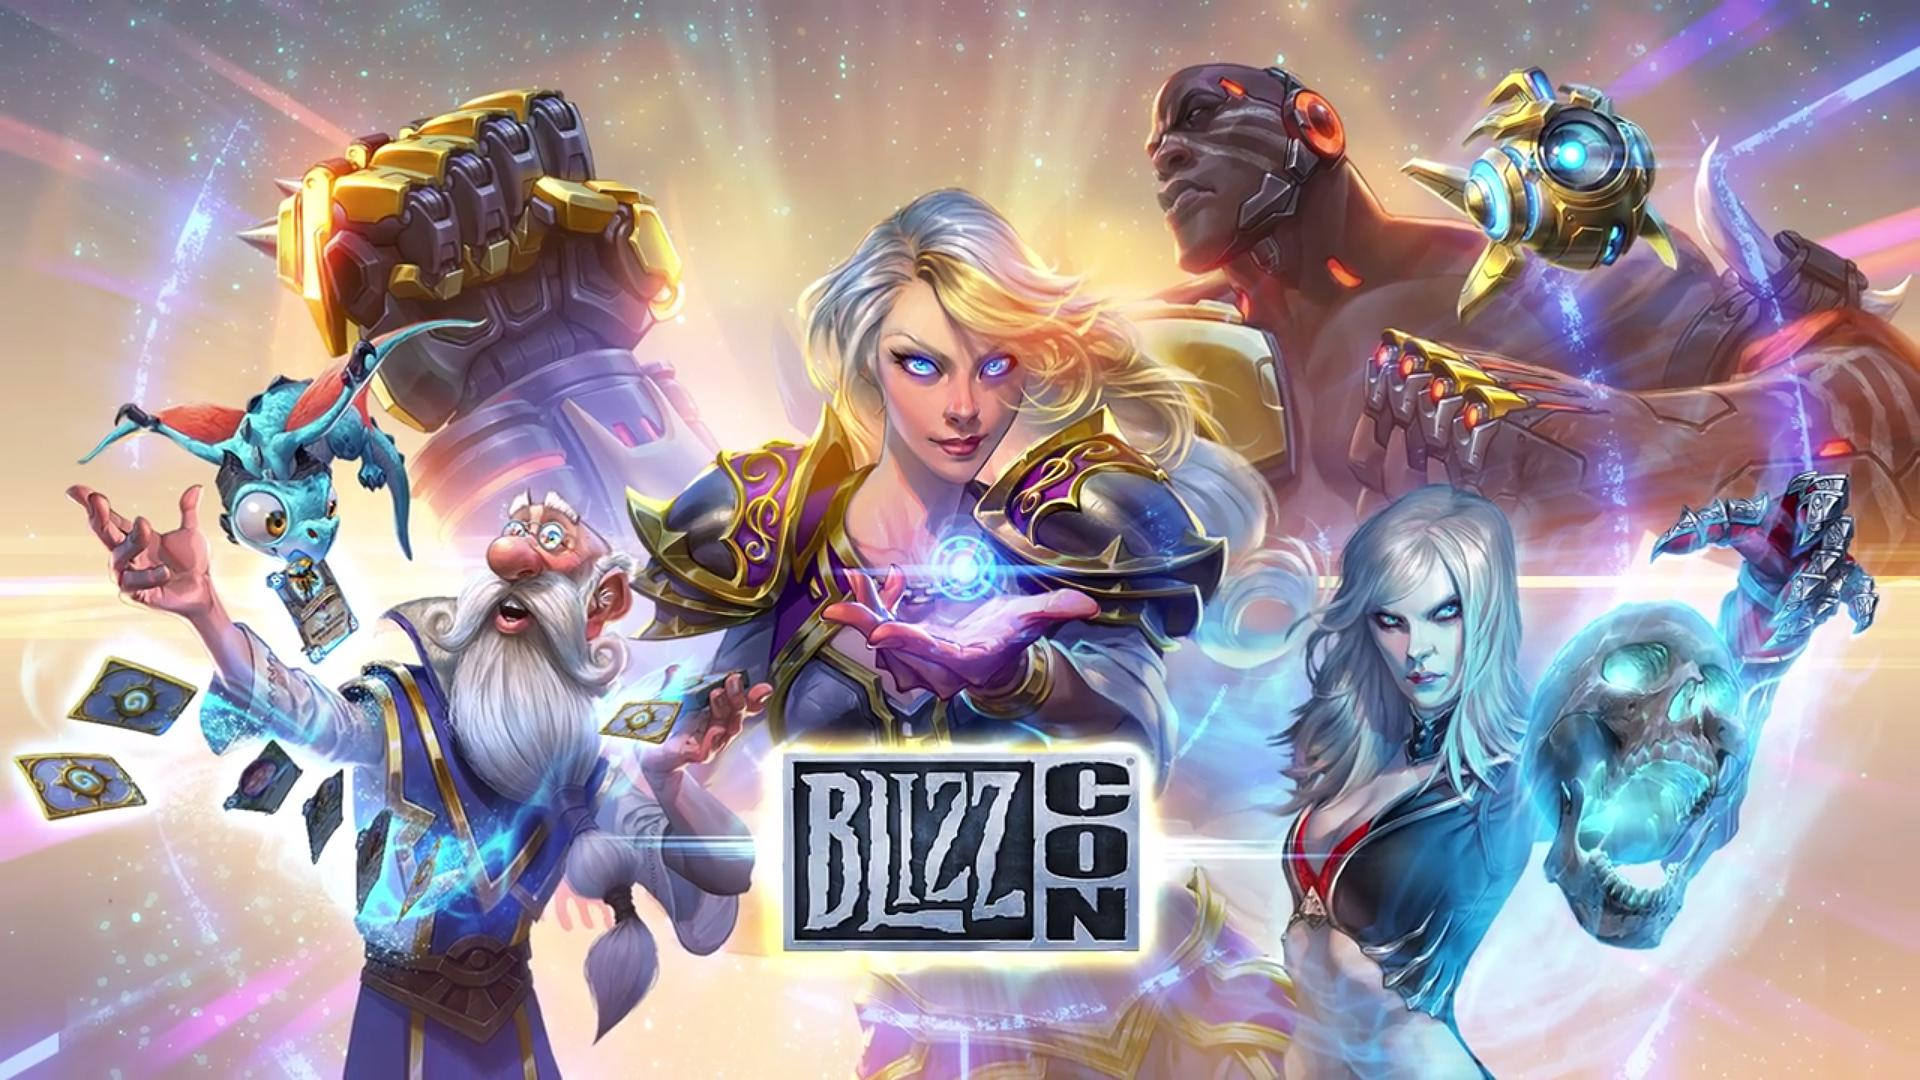 Win a virtual ticket to watch all the excitement of BlizzCon 2017 live on November 2-3!